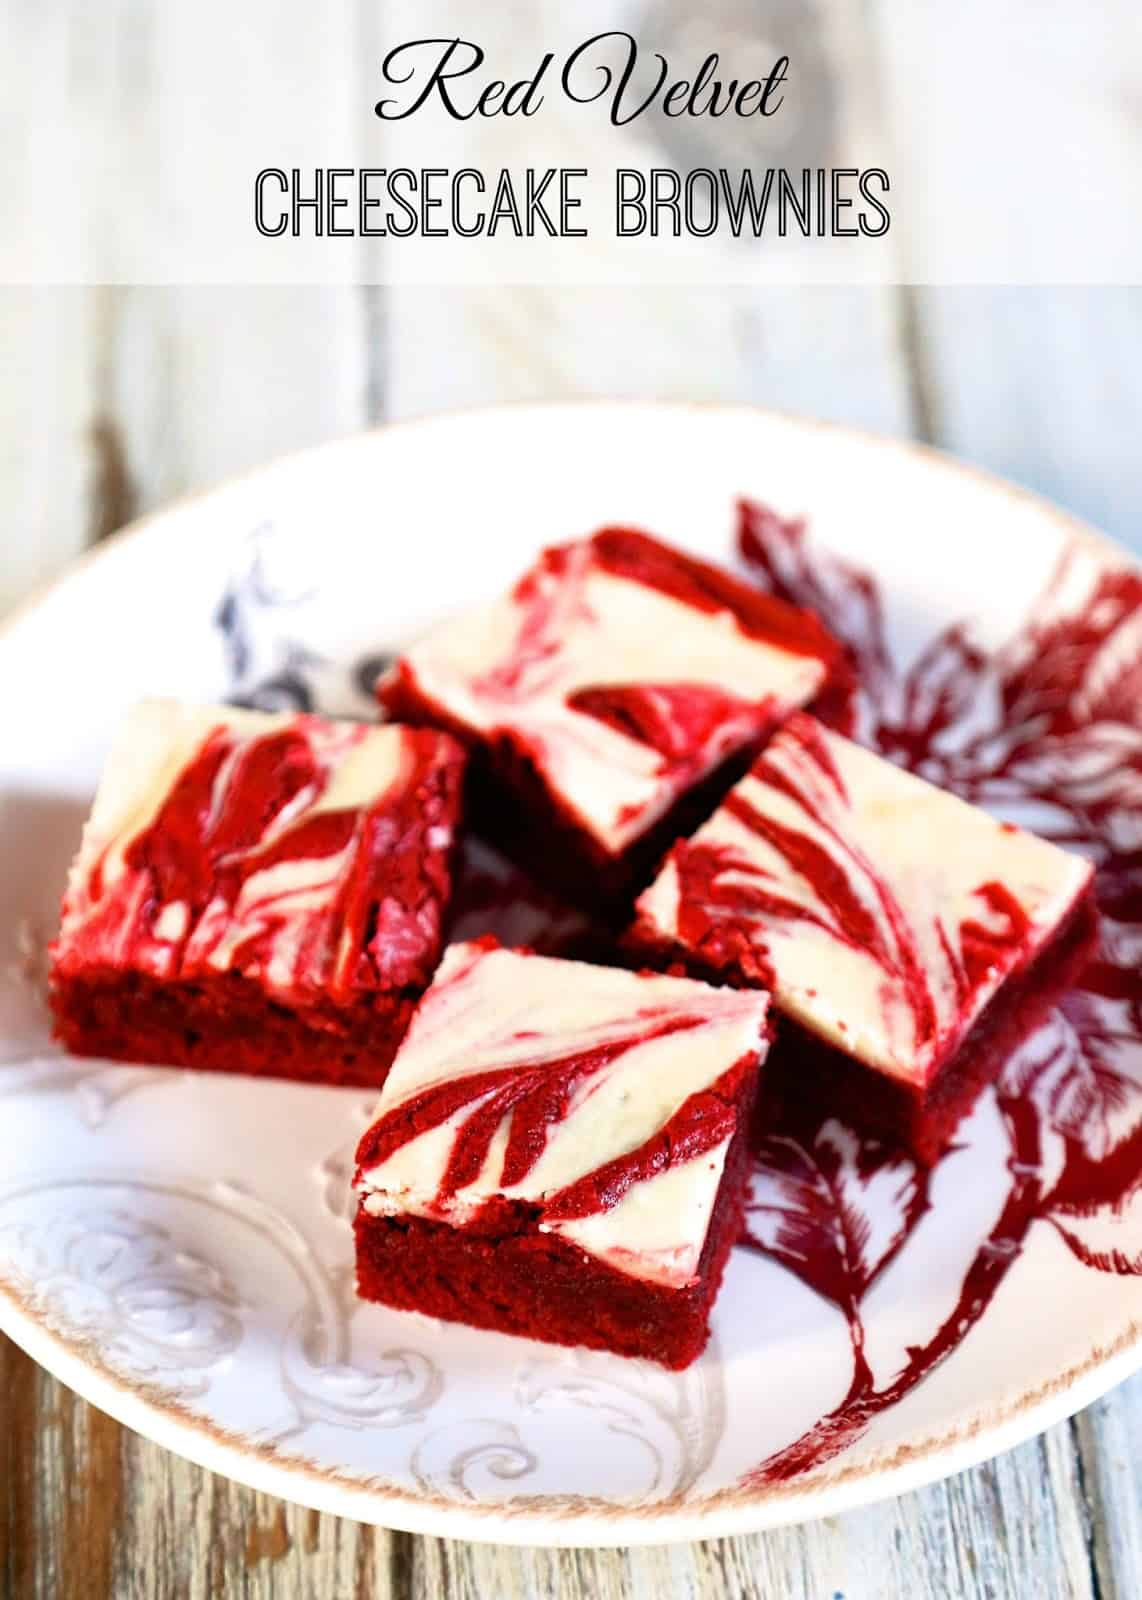 Red Velvet Cheesecake Brownies - homemade red velvet brownies with cheesecake swirled in the batter. All of my favorite desserts combined into one amazing recipe! These are SO good!!! Makes a great homemade gift. Perfect ending to you holiday meal. We love this red velvet brownie recipe!